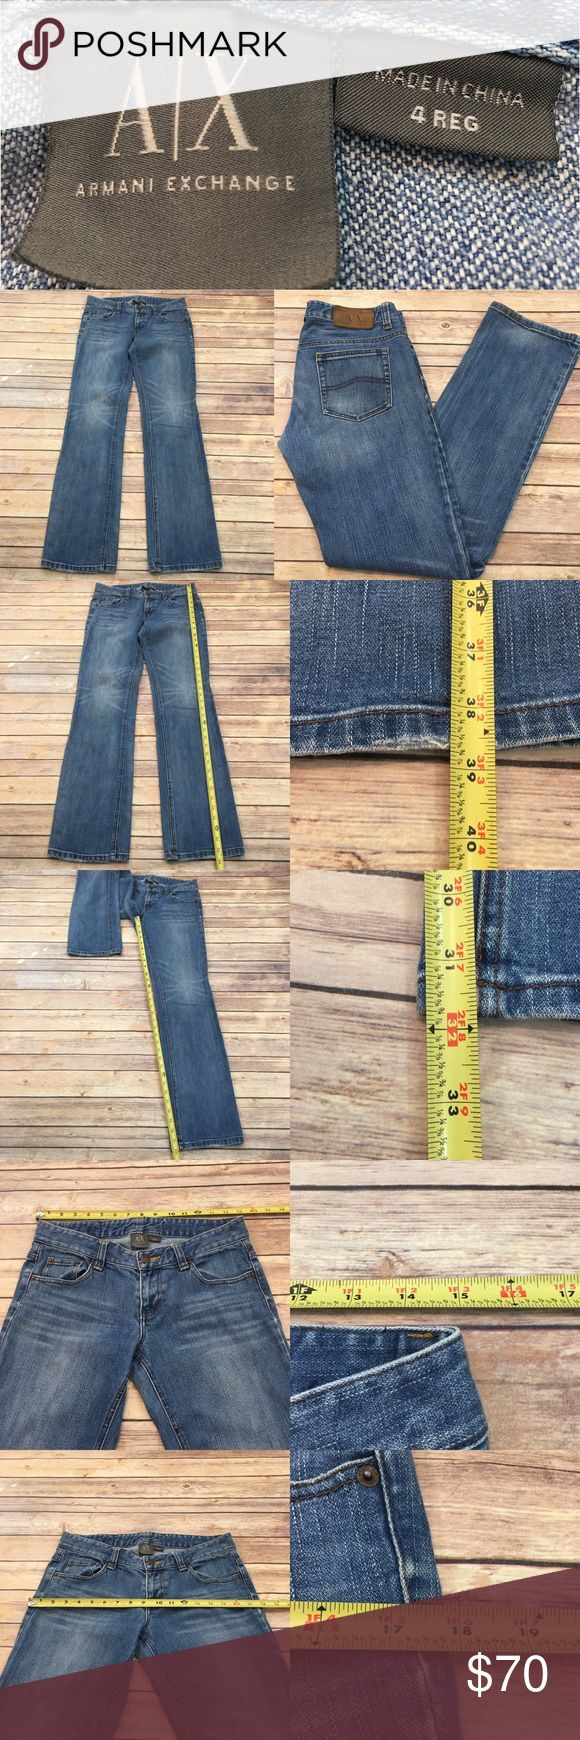 🏝Sz 4 Armani Exchange Bootcut Med Wash Denim Jean Measurements are in photos. Normal wash wear, shows some wear on the bottoms, no other flaws. F3/31  I do not comment to my buyers after purchases, due to their privacy. If you would like any reassurance after your purchase that I did receive your order, please feel free to comment on the listing and I will promptly respond. I ship everyday and I always package safely. Thanks! Armani Exchange Jeans Boot Cut